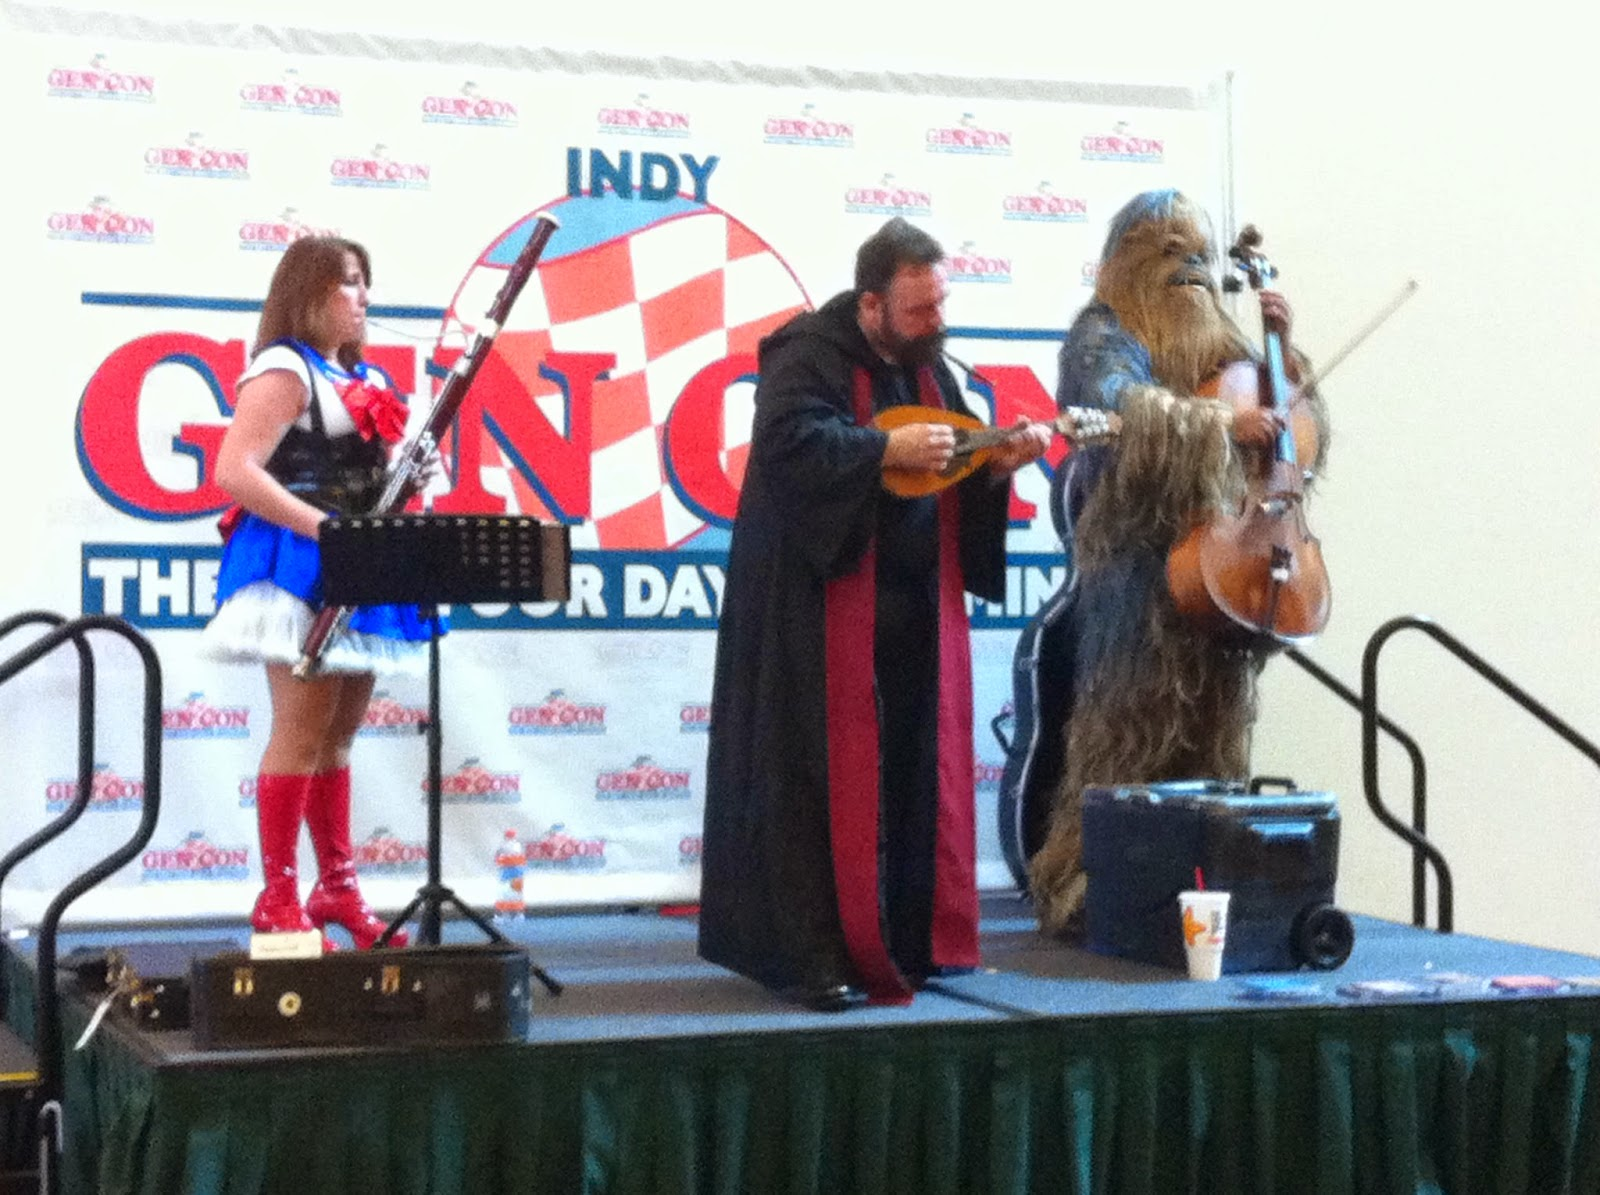 Watching a band with a Wookiee on cello.